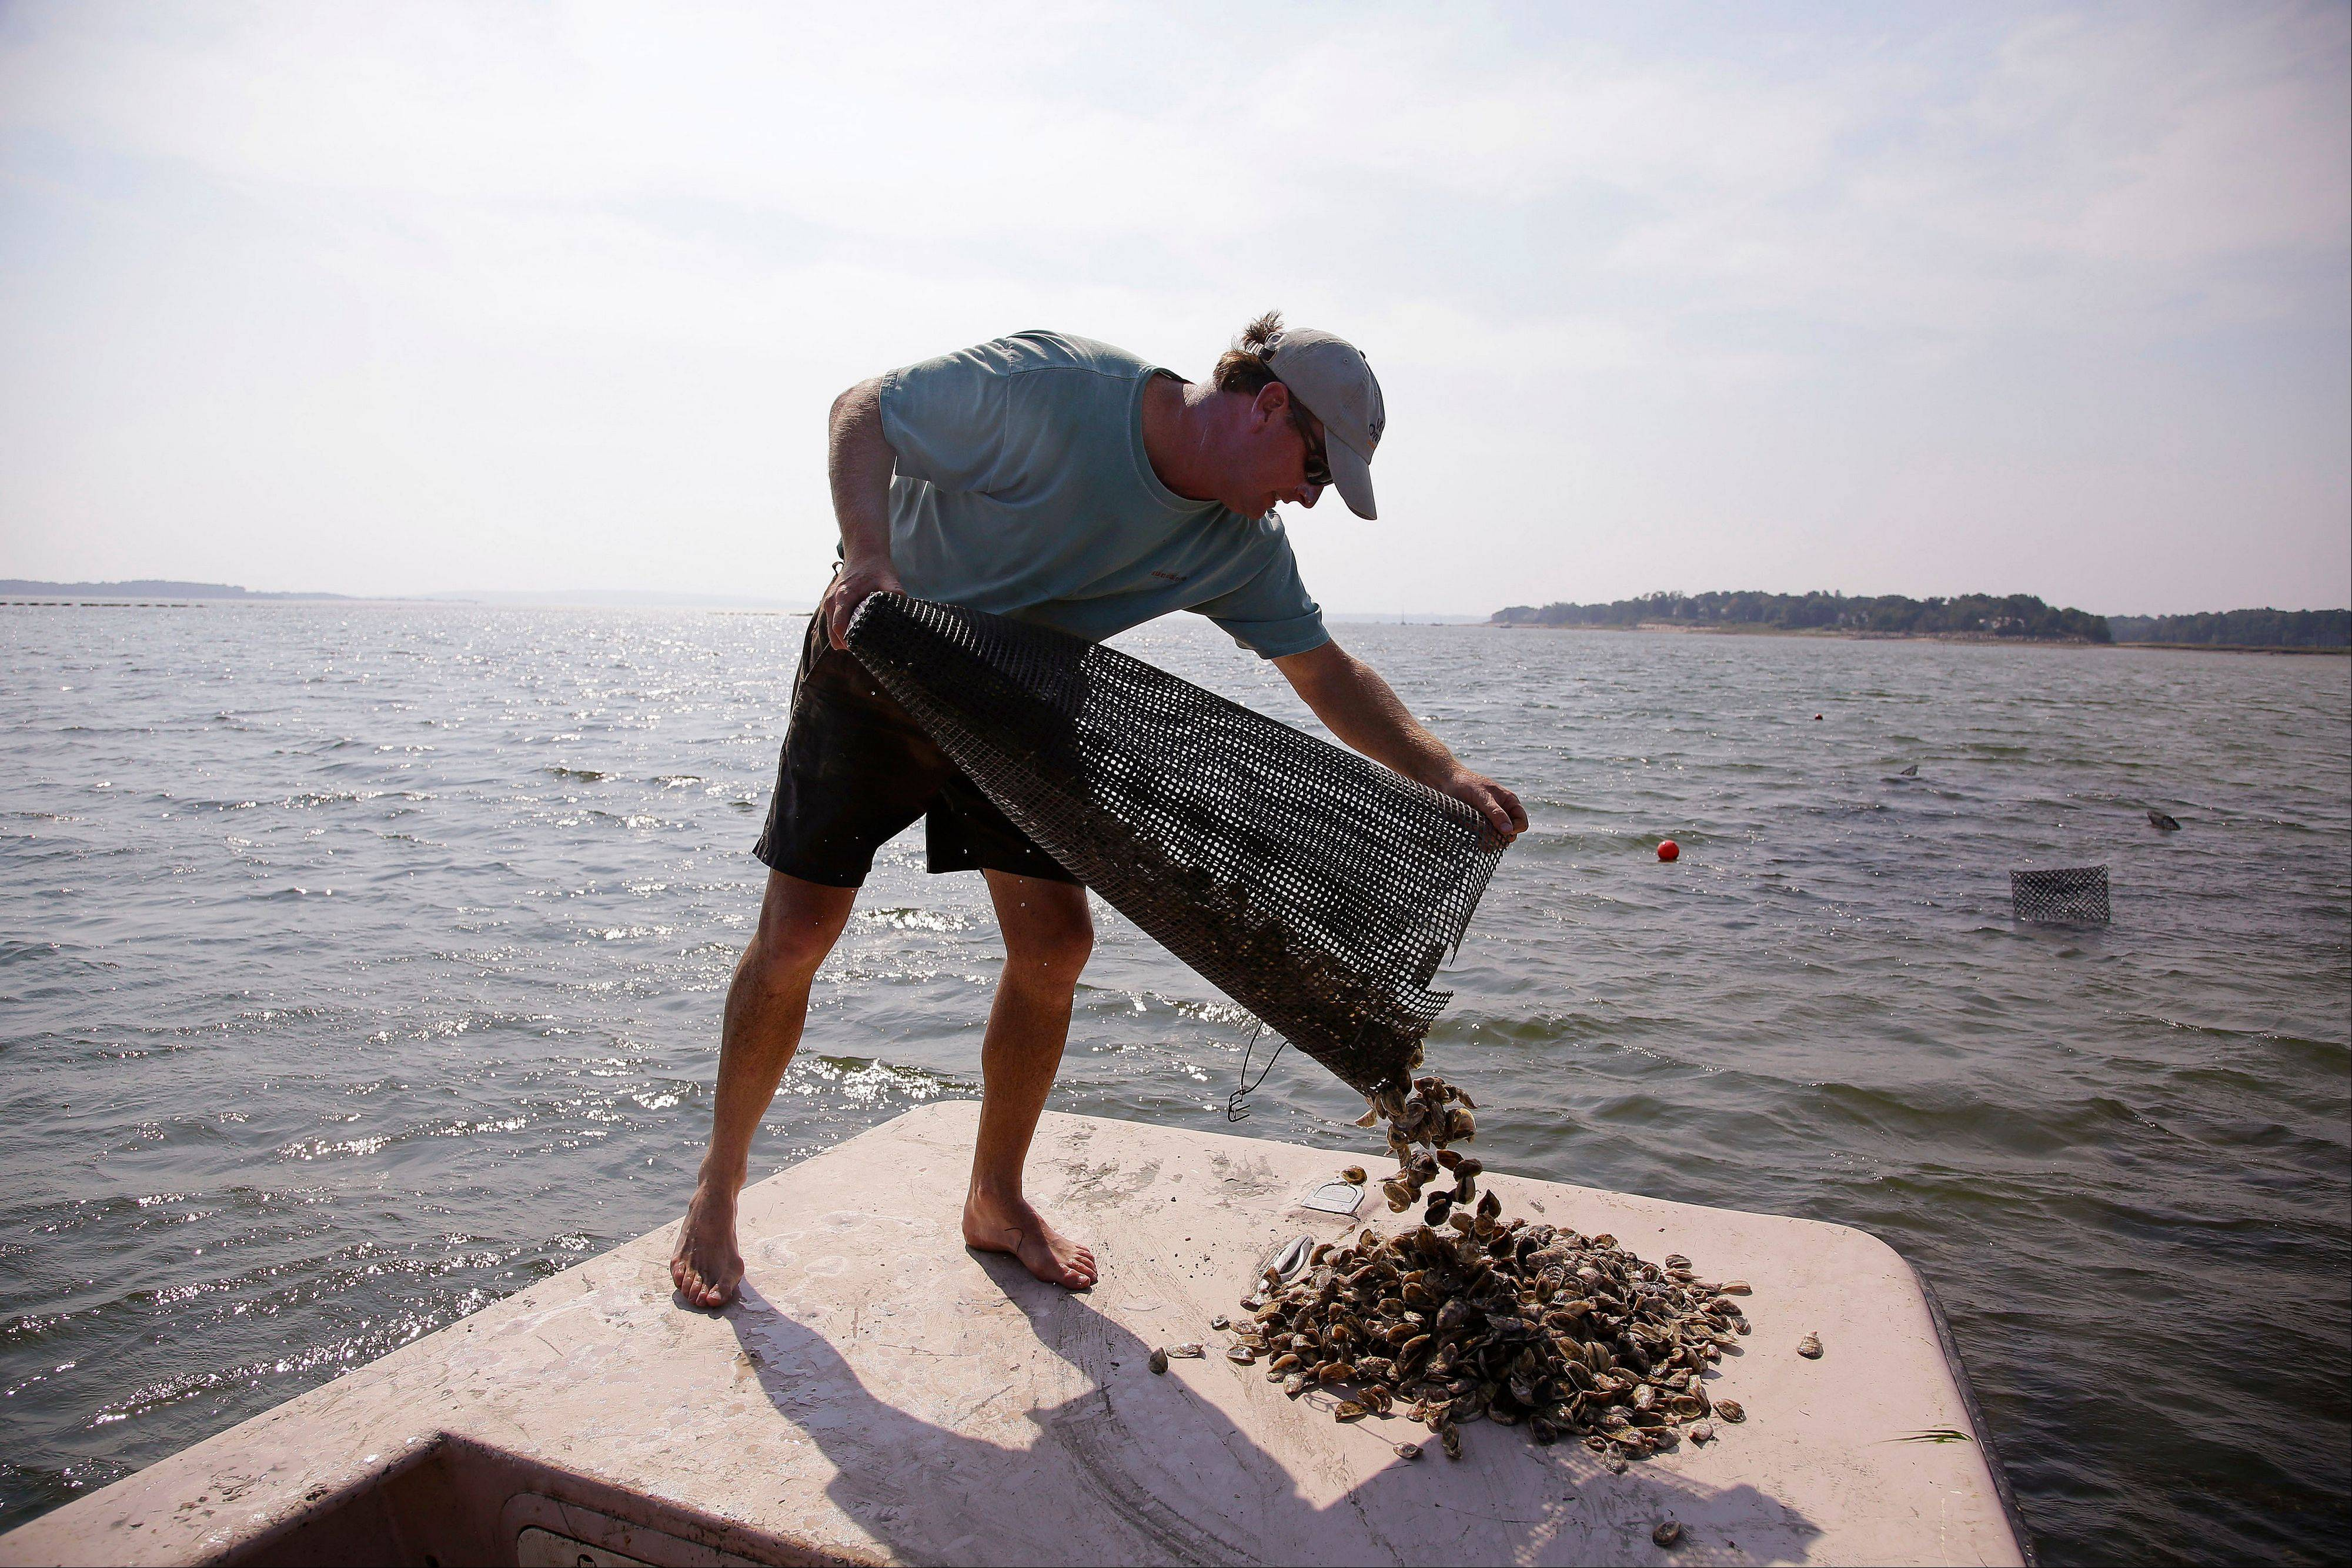 Oyster cultivator Don Merry pours oyster seed onto the bow of his boat Thursday on Duxbury Bay in Duxbury, Mass.